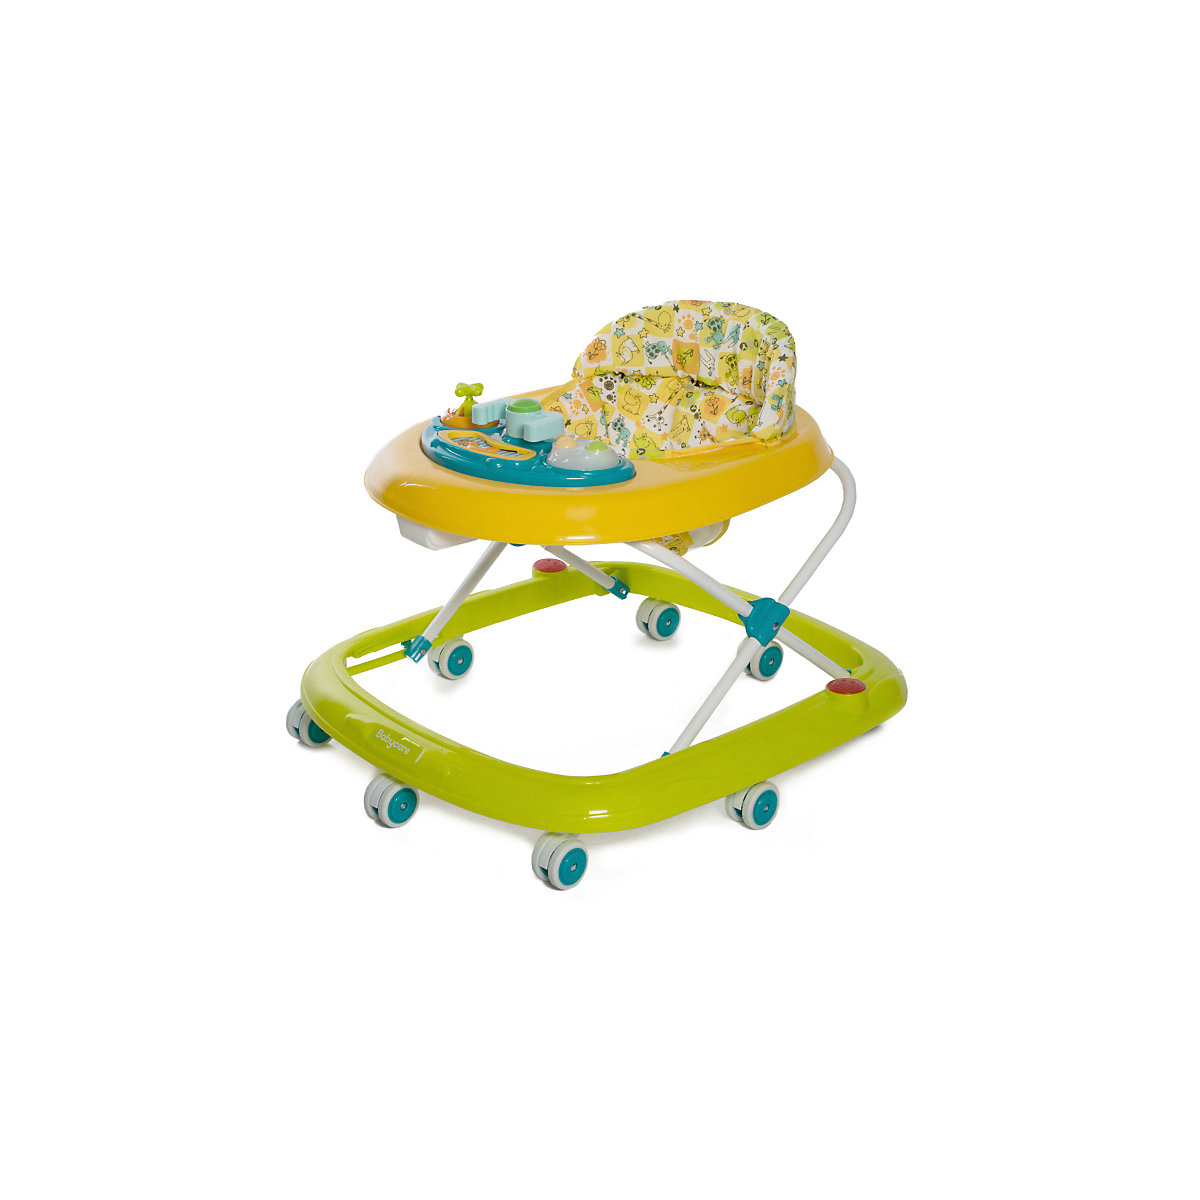 Walkers BABY CARE 8600041 Baby Walker Activity & Gear for children boys and girls 2018 baby boys 90